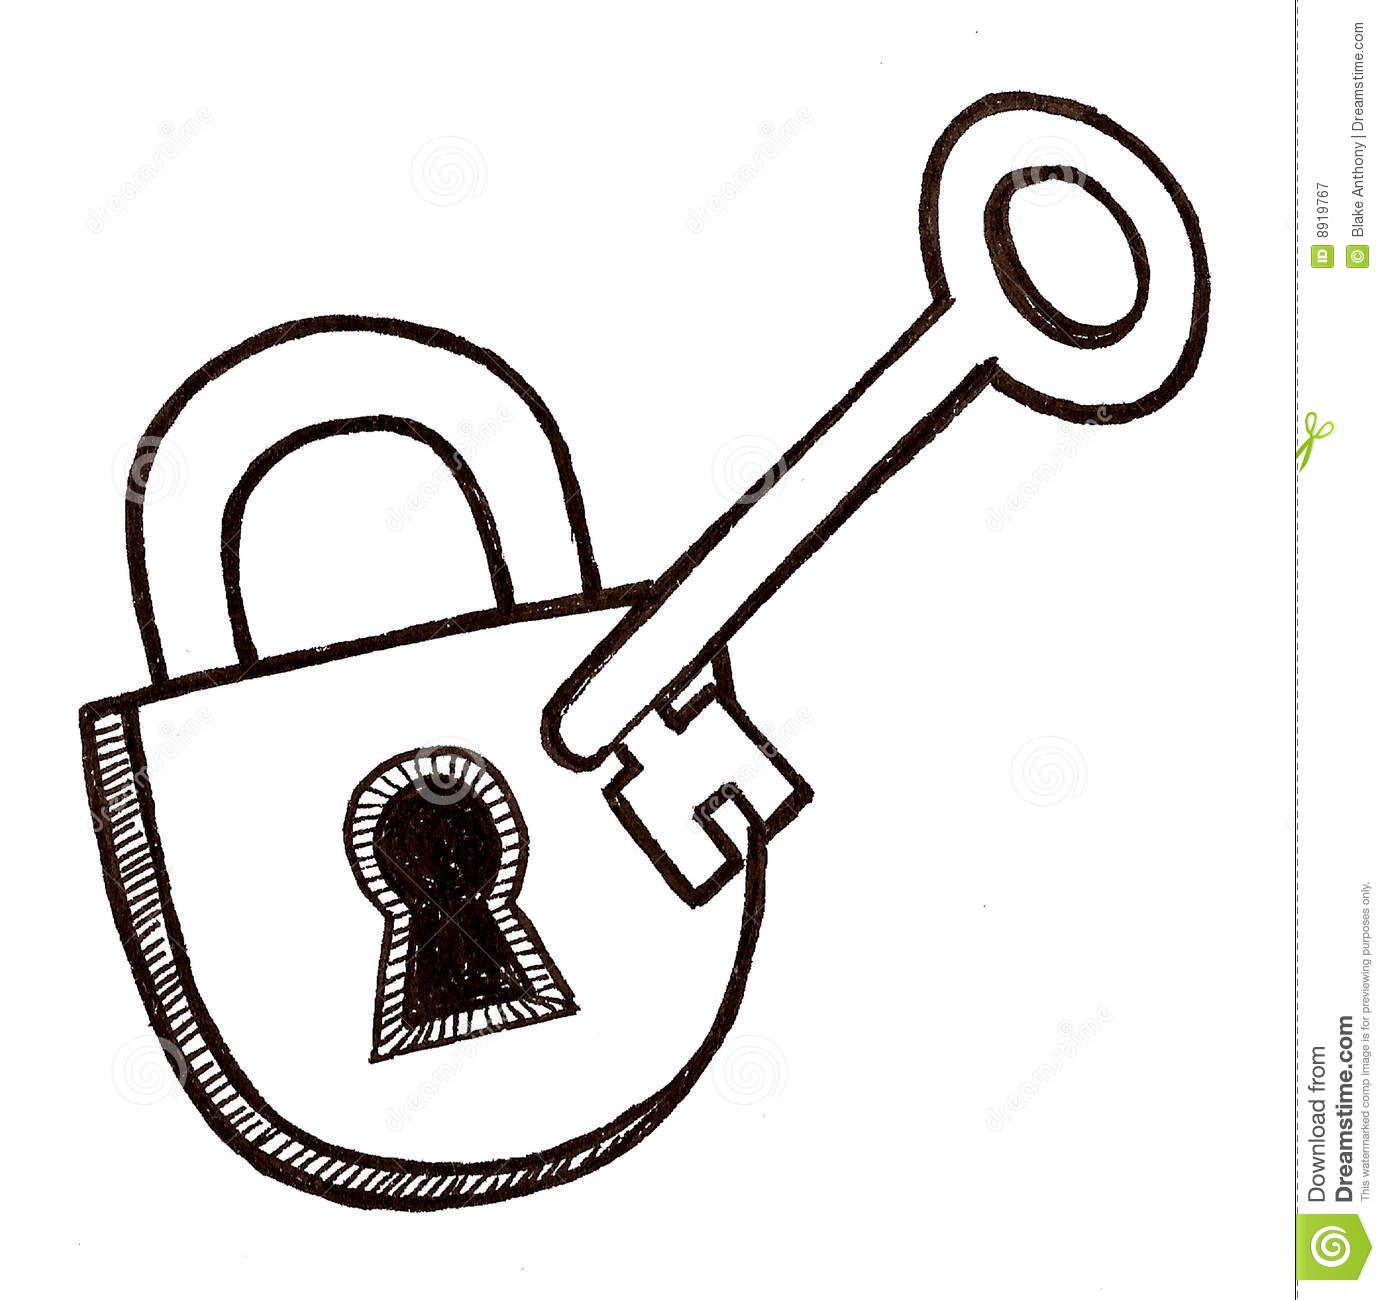 Key clipart key lock #11